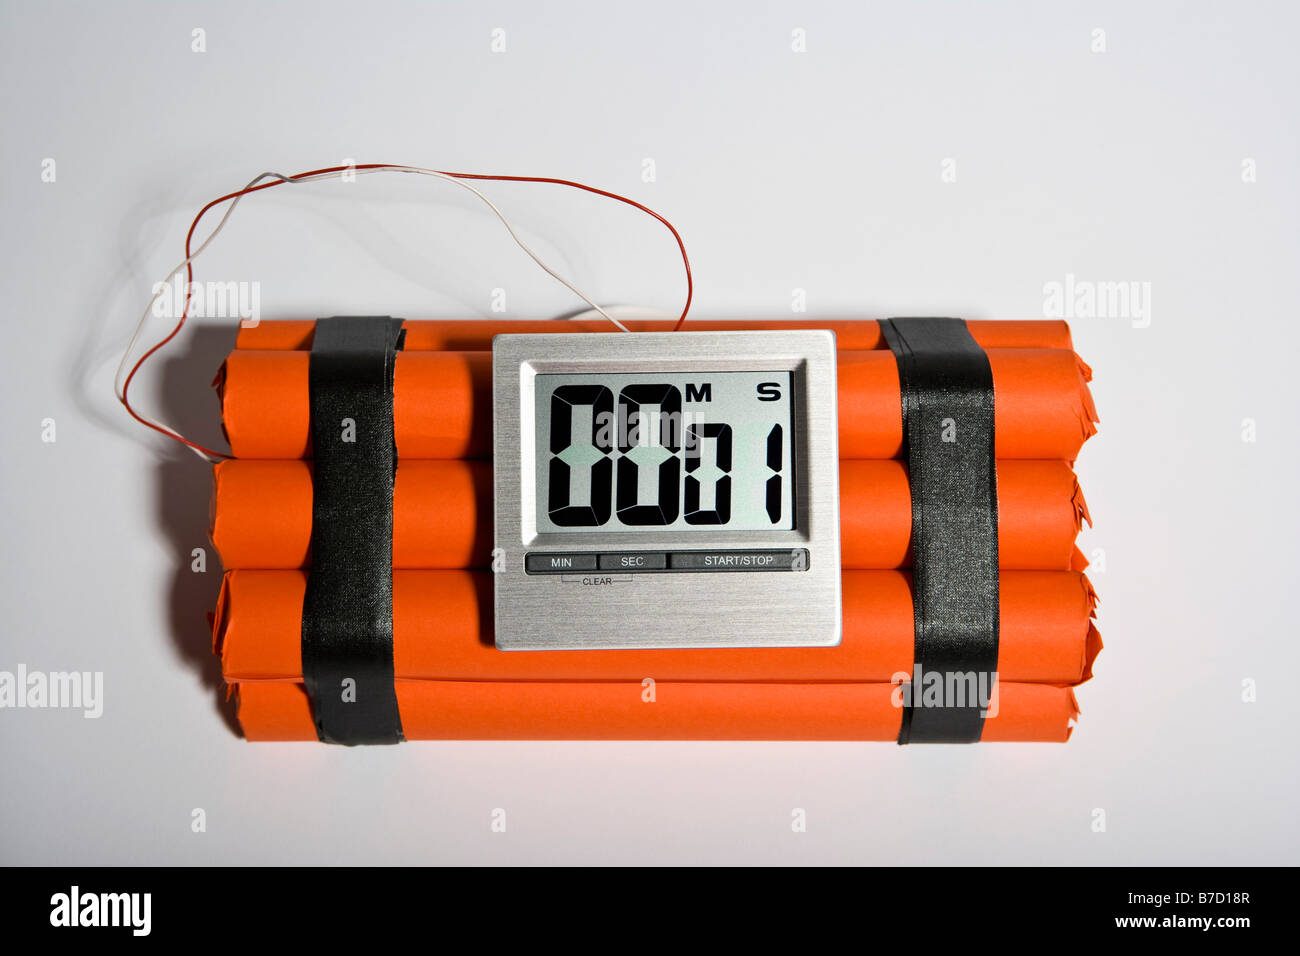 A dynamite time bomb with 1 second left on the timer - Stock Image